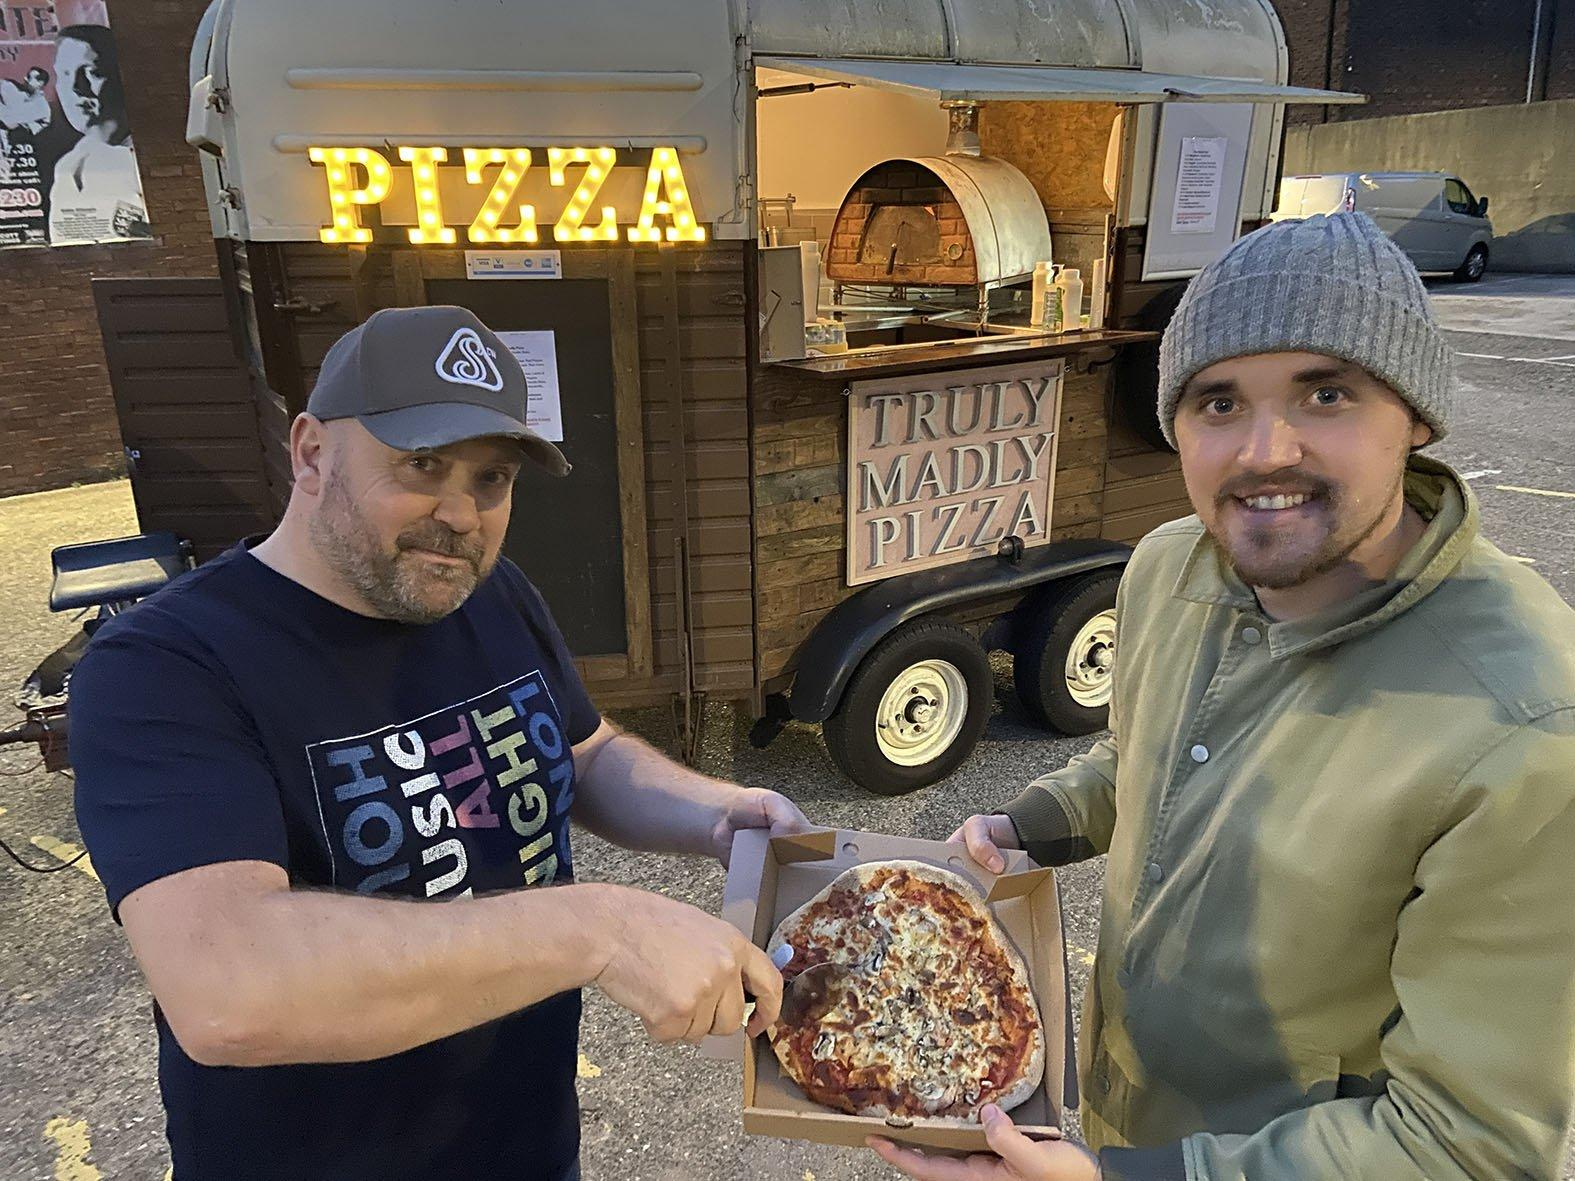 Stone-baked pizza trailer proves a hit after pitching up at Sunderland gym car park